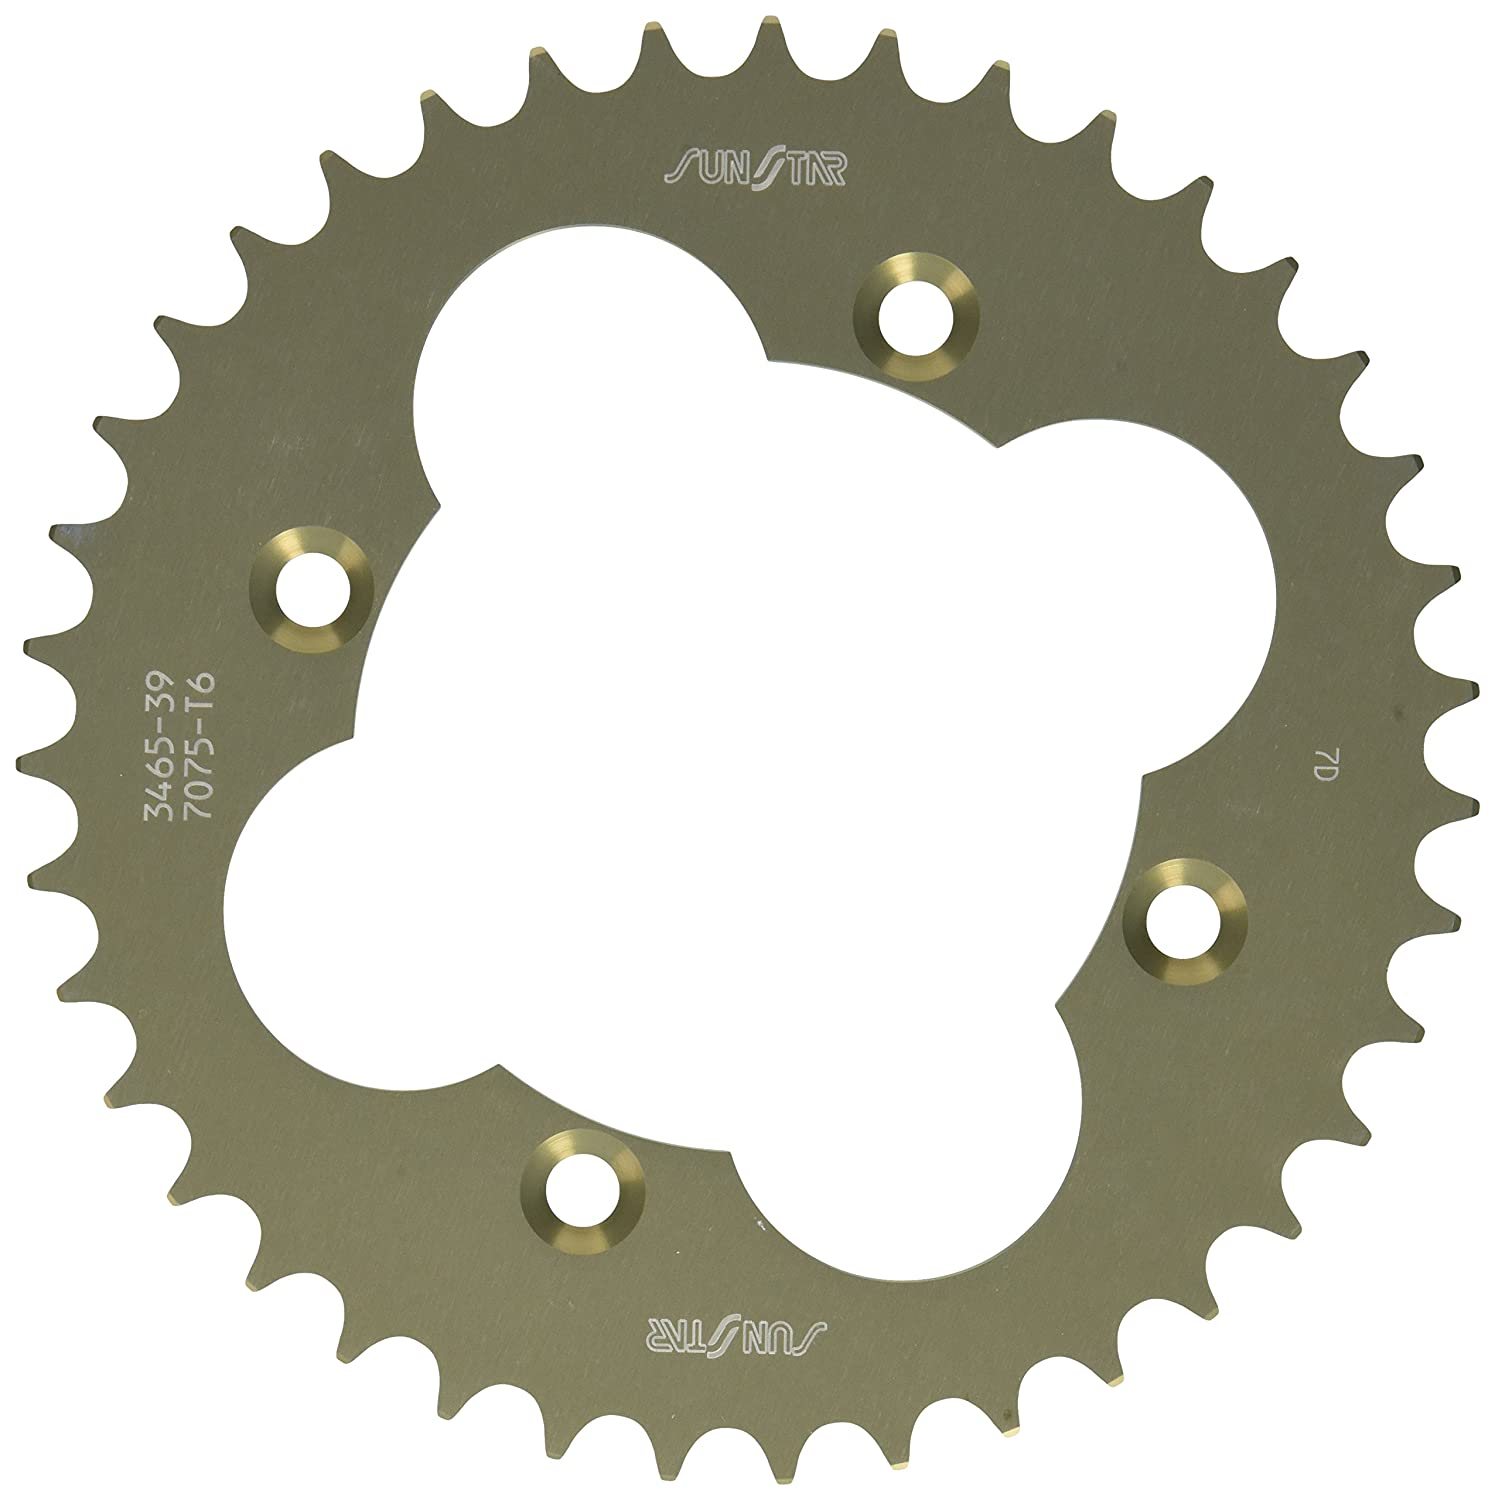 Sunstar 5-346539 Works Triplestar 39-Teeth 520 Chain Size Rear Aluminum Sprocket